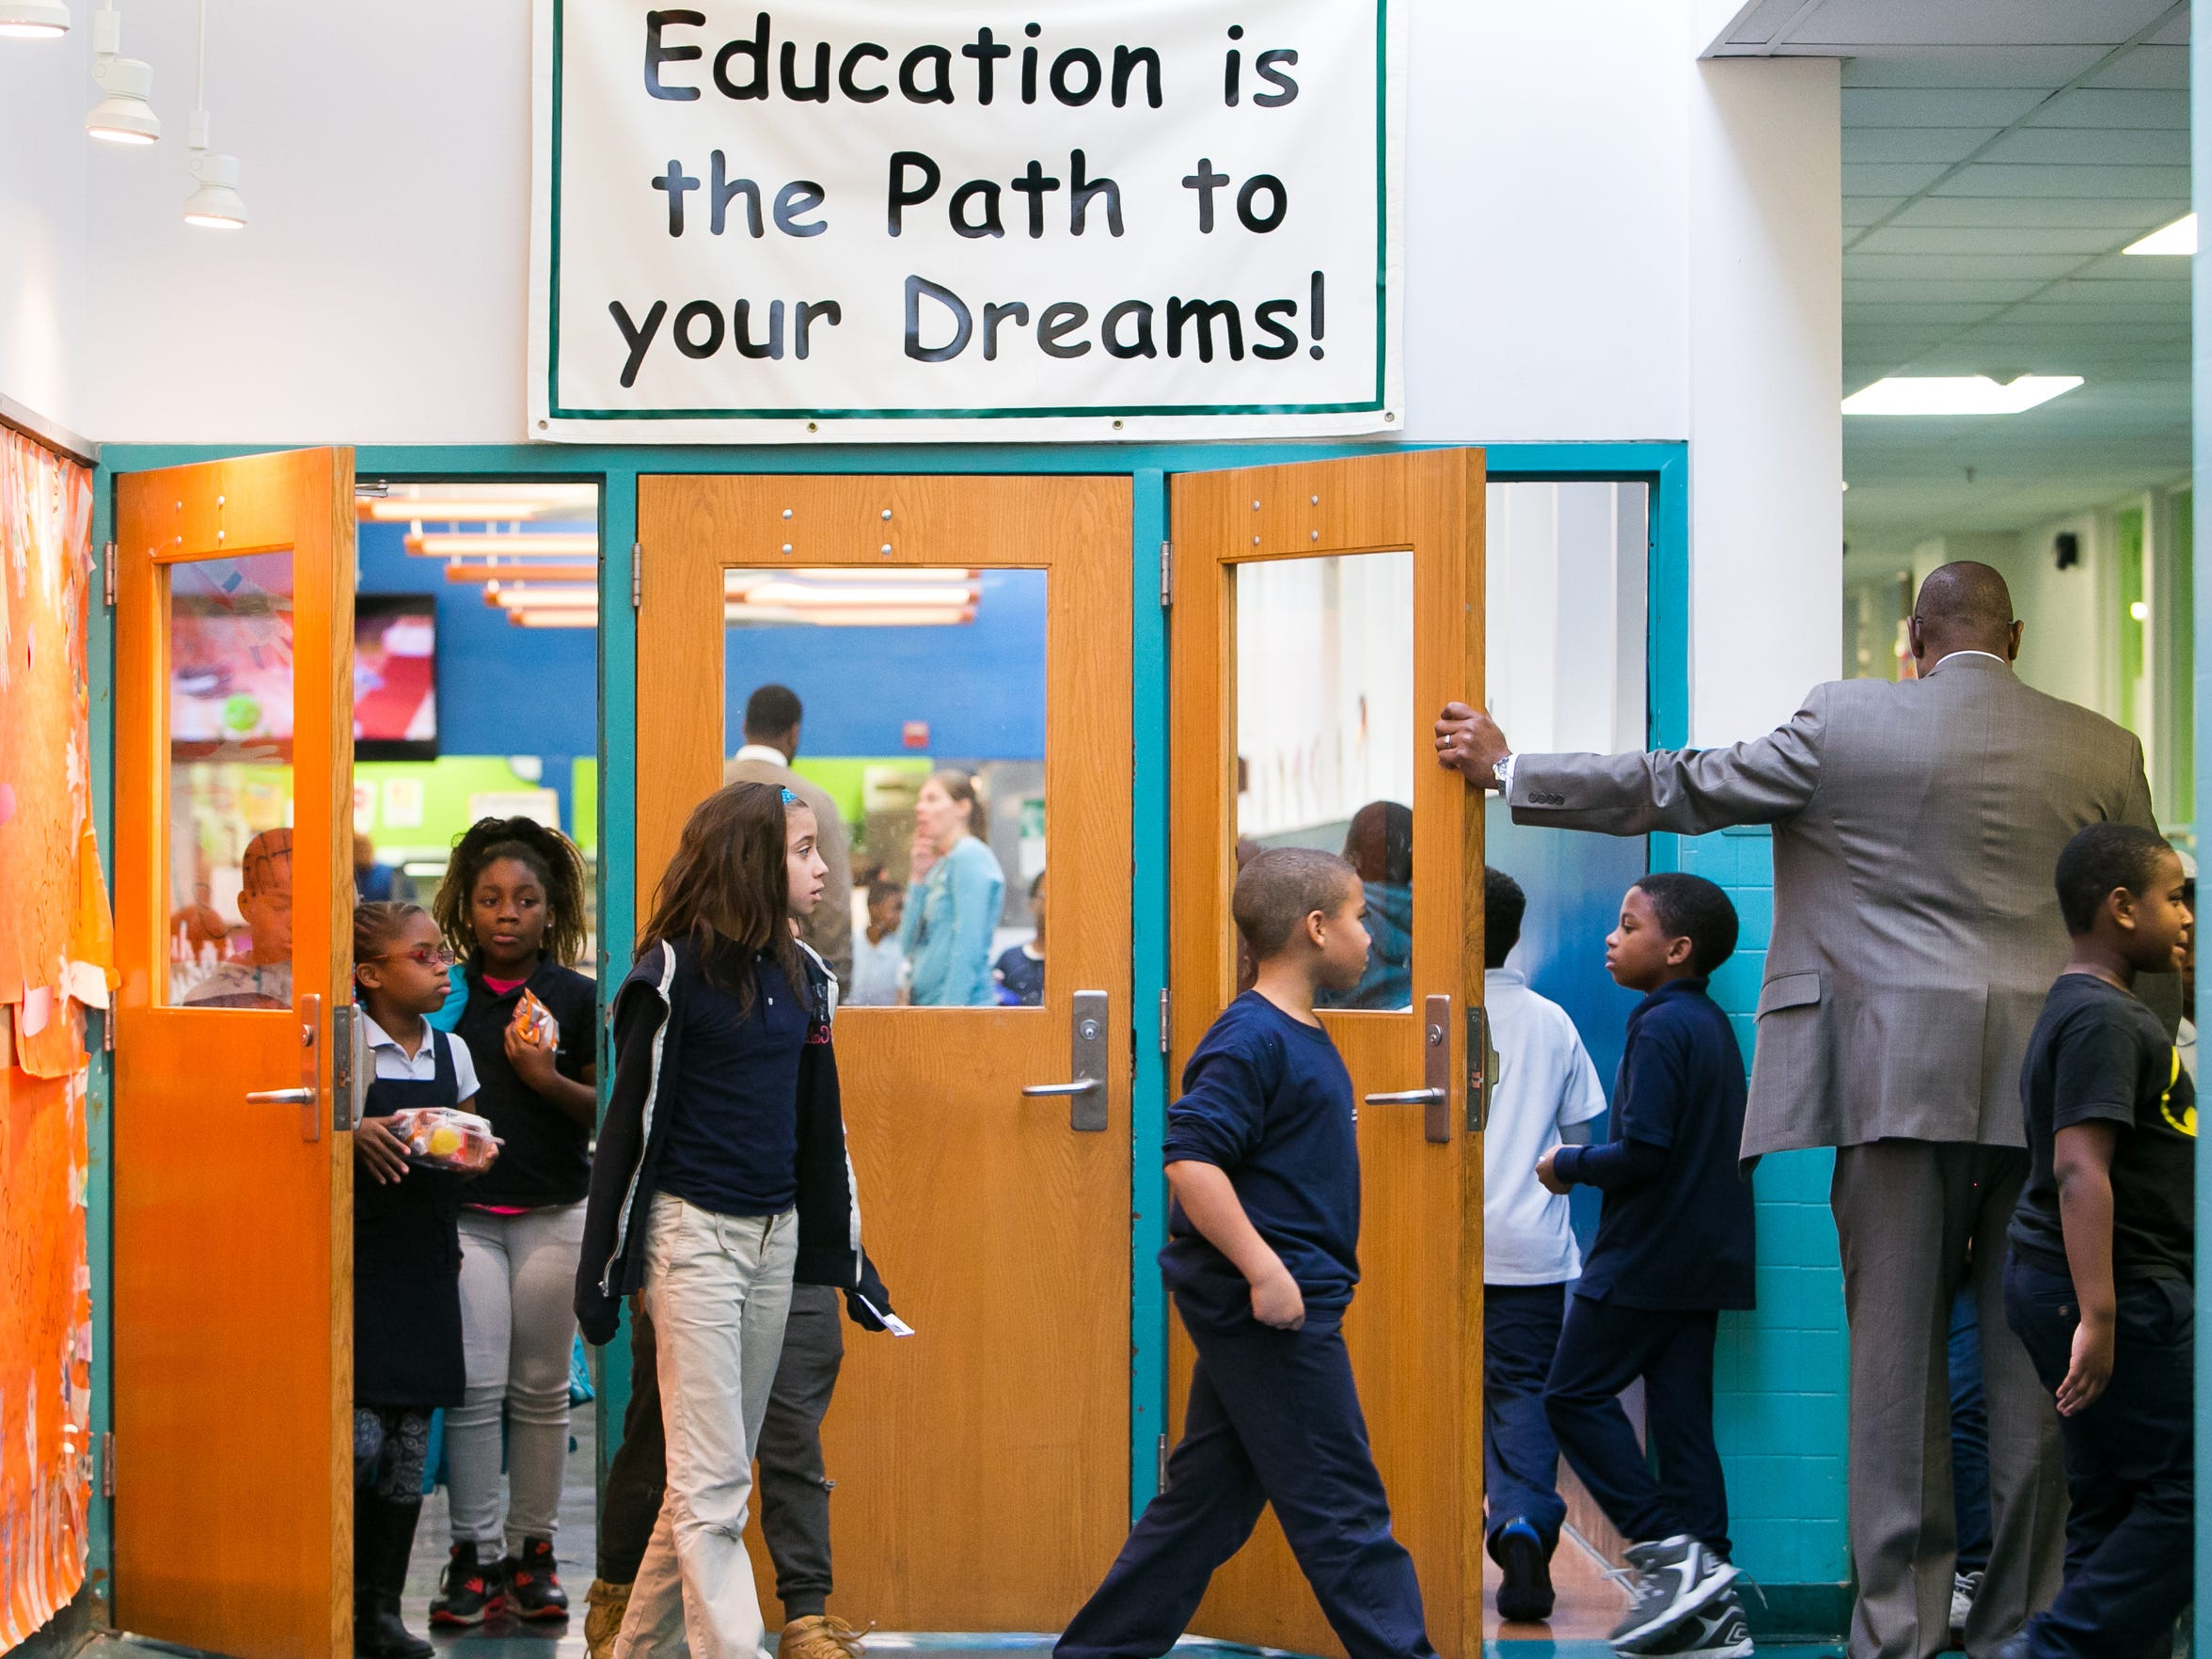 Principal Jeffers Brown holds the door as students arrive for their lunch at Stubbs Elementary School in this file photo. He said the school has held several trauma-informed workshops, which teach staff how to cope with students' emotional and behavioralissues.